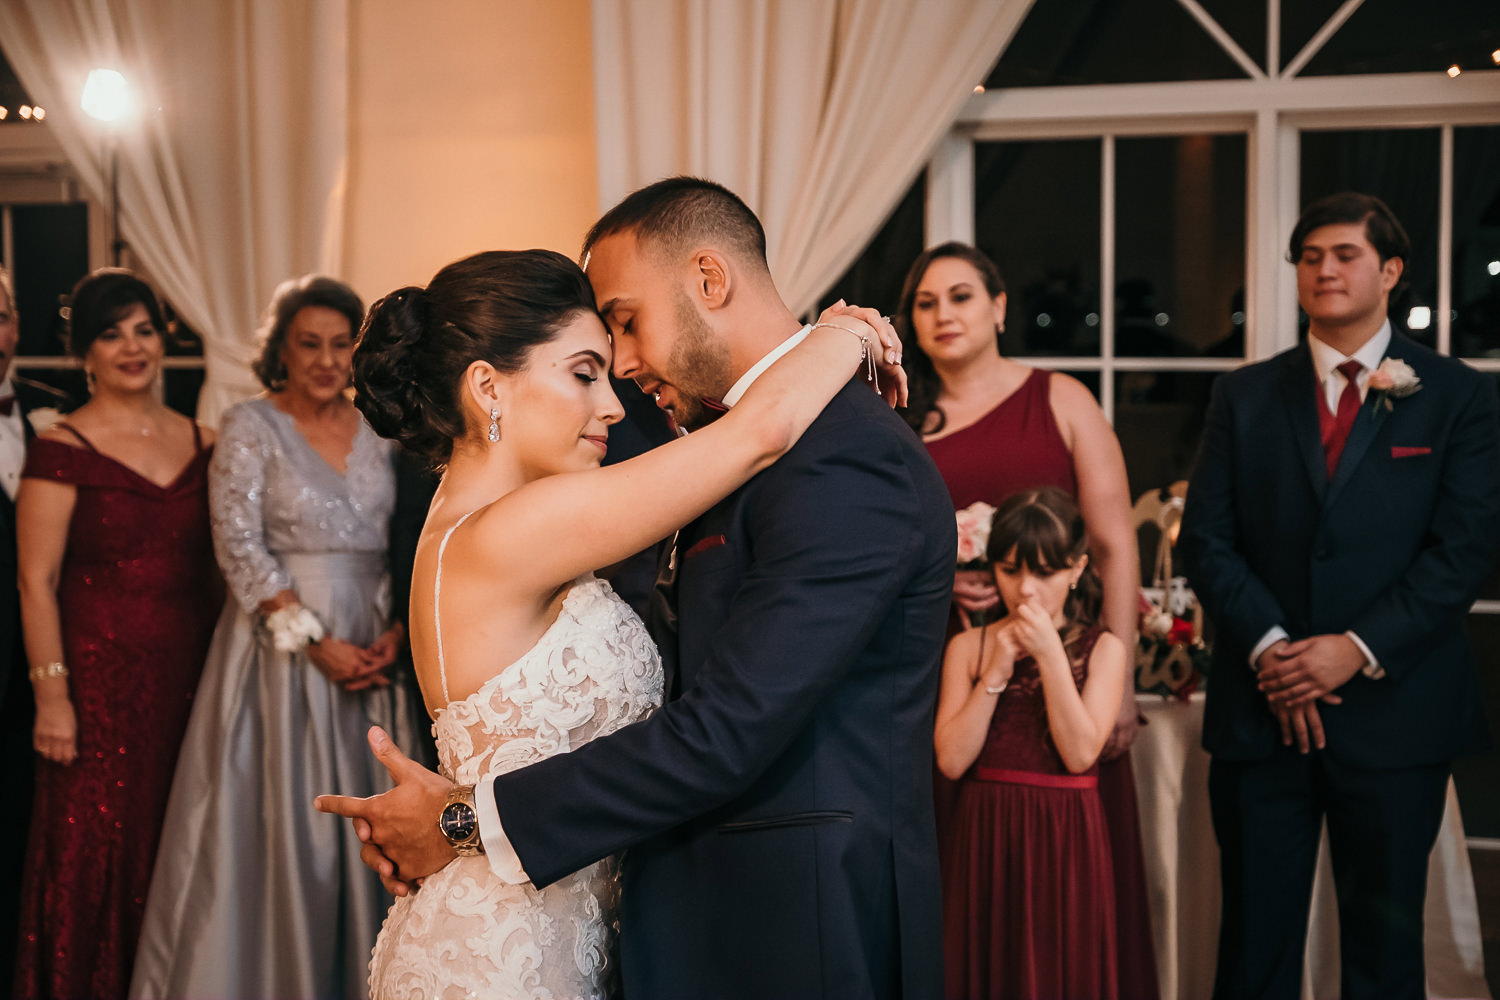 bride and groom foreheads touching during first dance